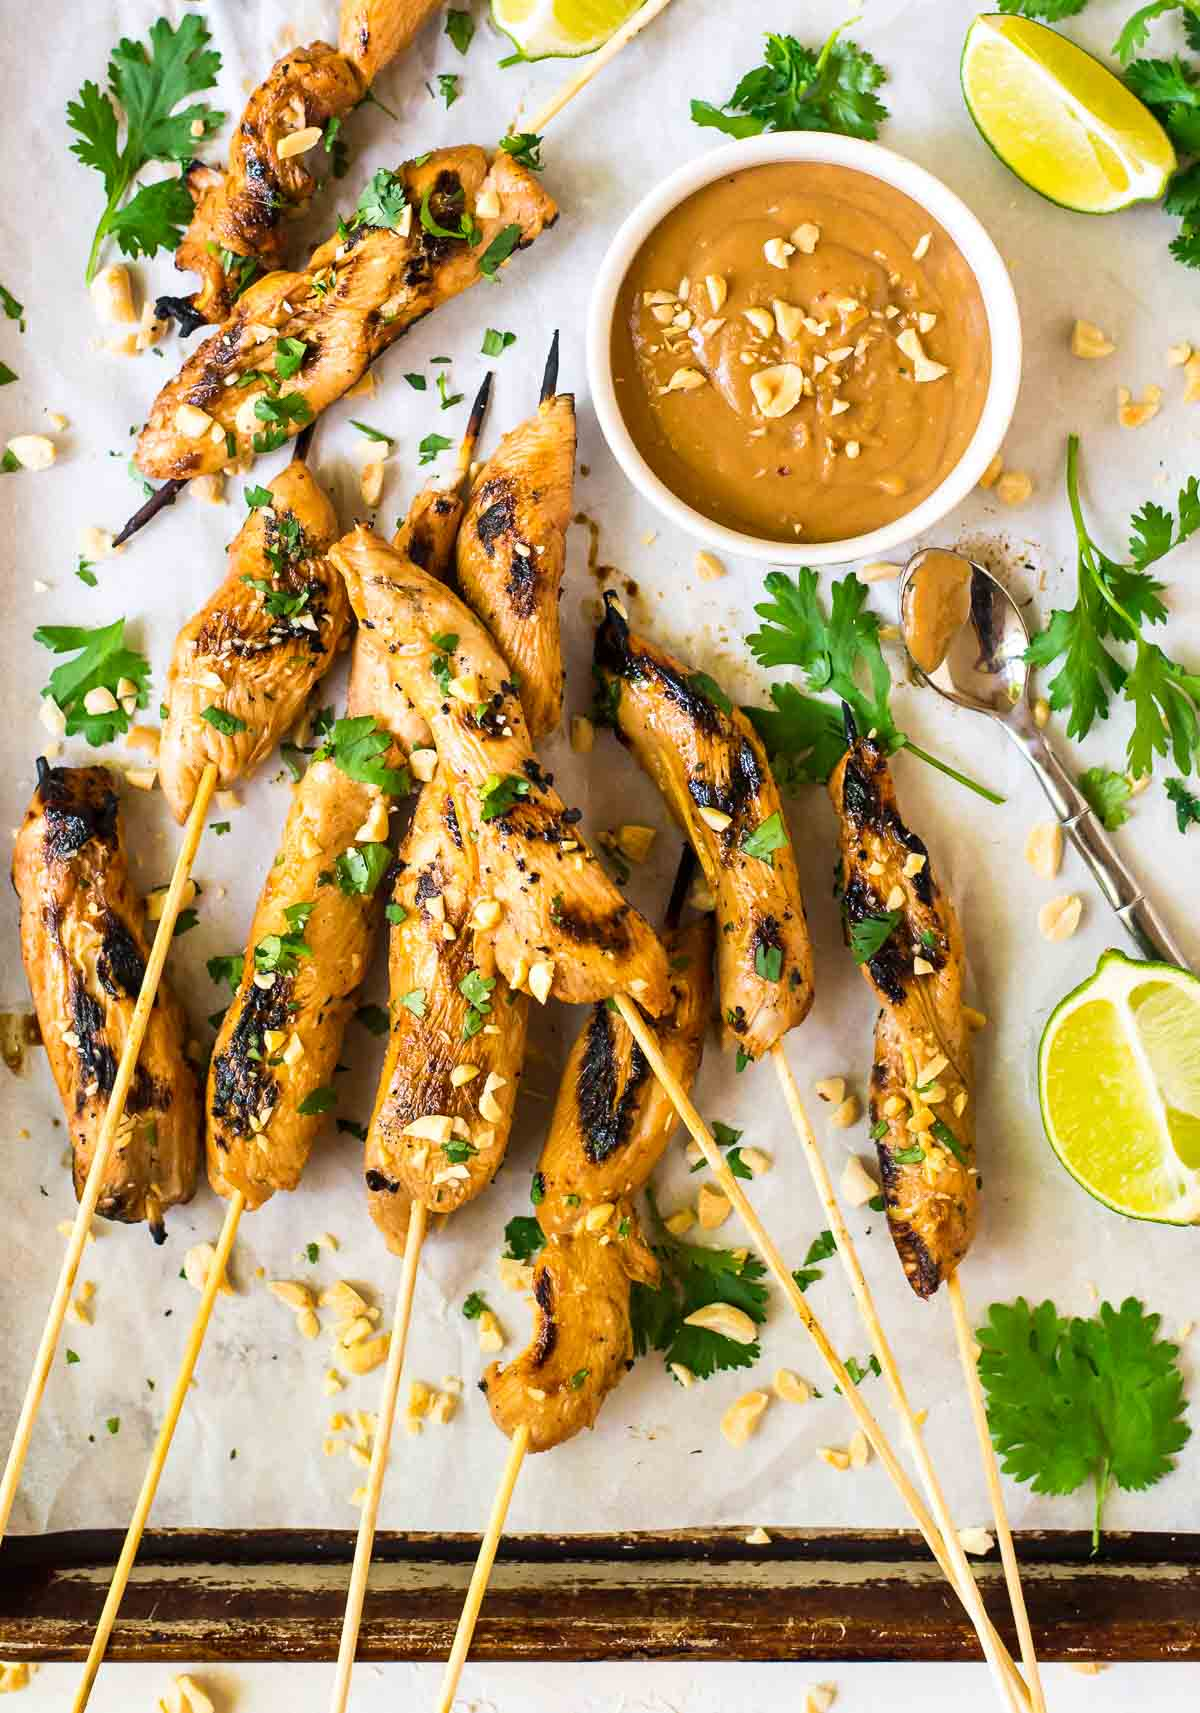 How to make restaurant-style Satay Chicken with Peanut Butter Dipping Sauce. Everyone's favorite appetizer, and it doubles as a light dinner too! @wellplated